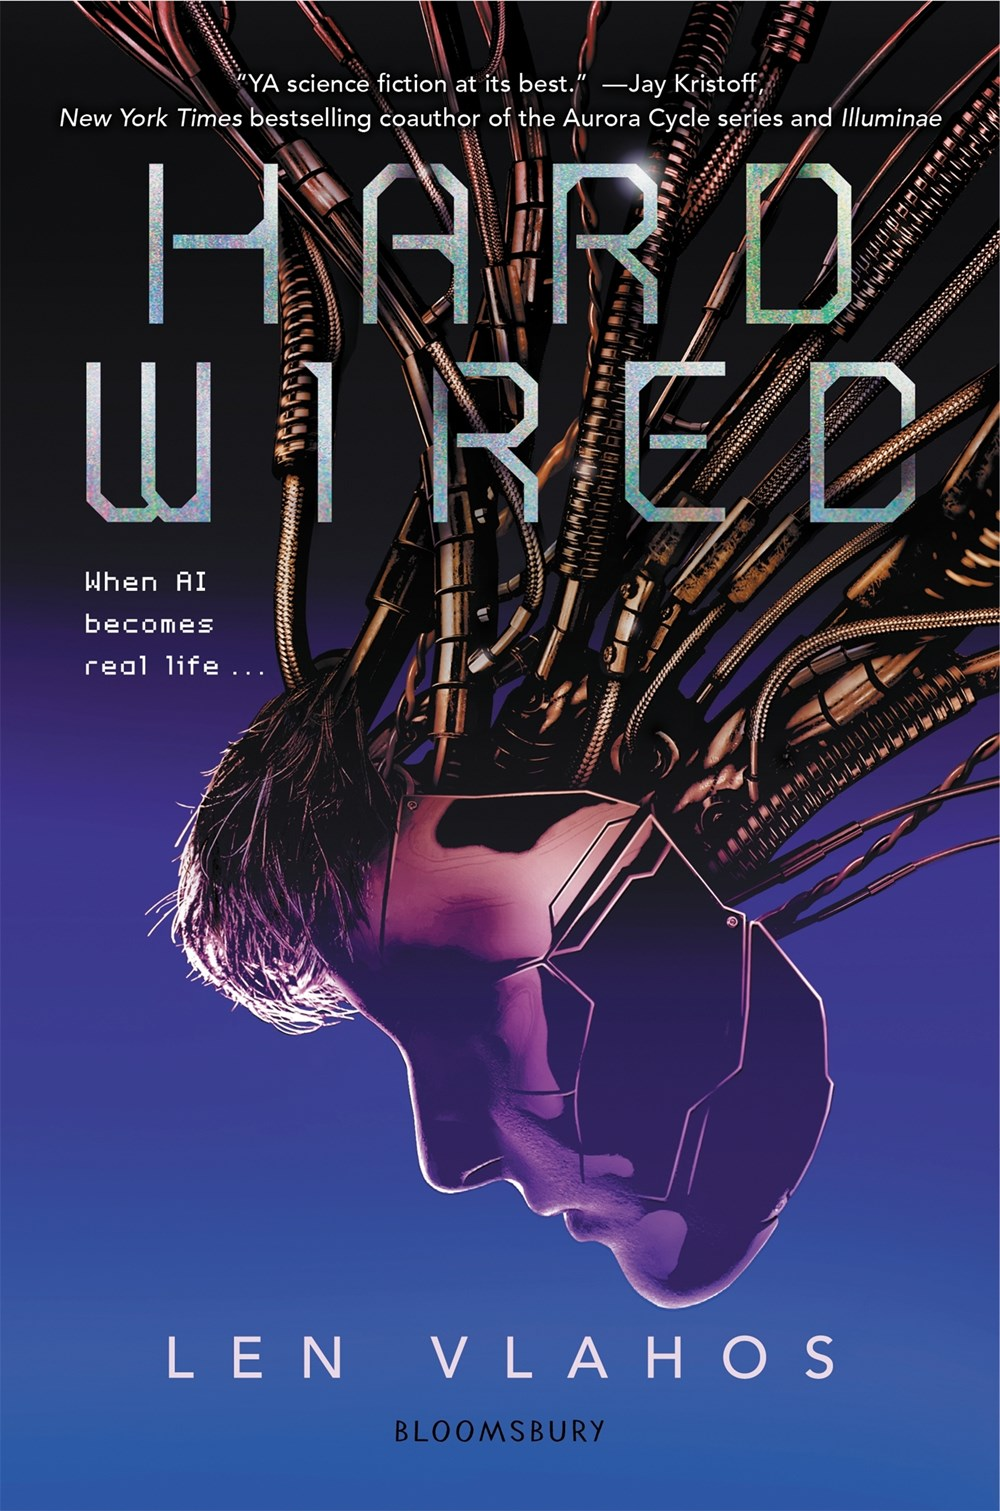 Image for Hard Wired by Len Vlahos